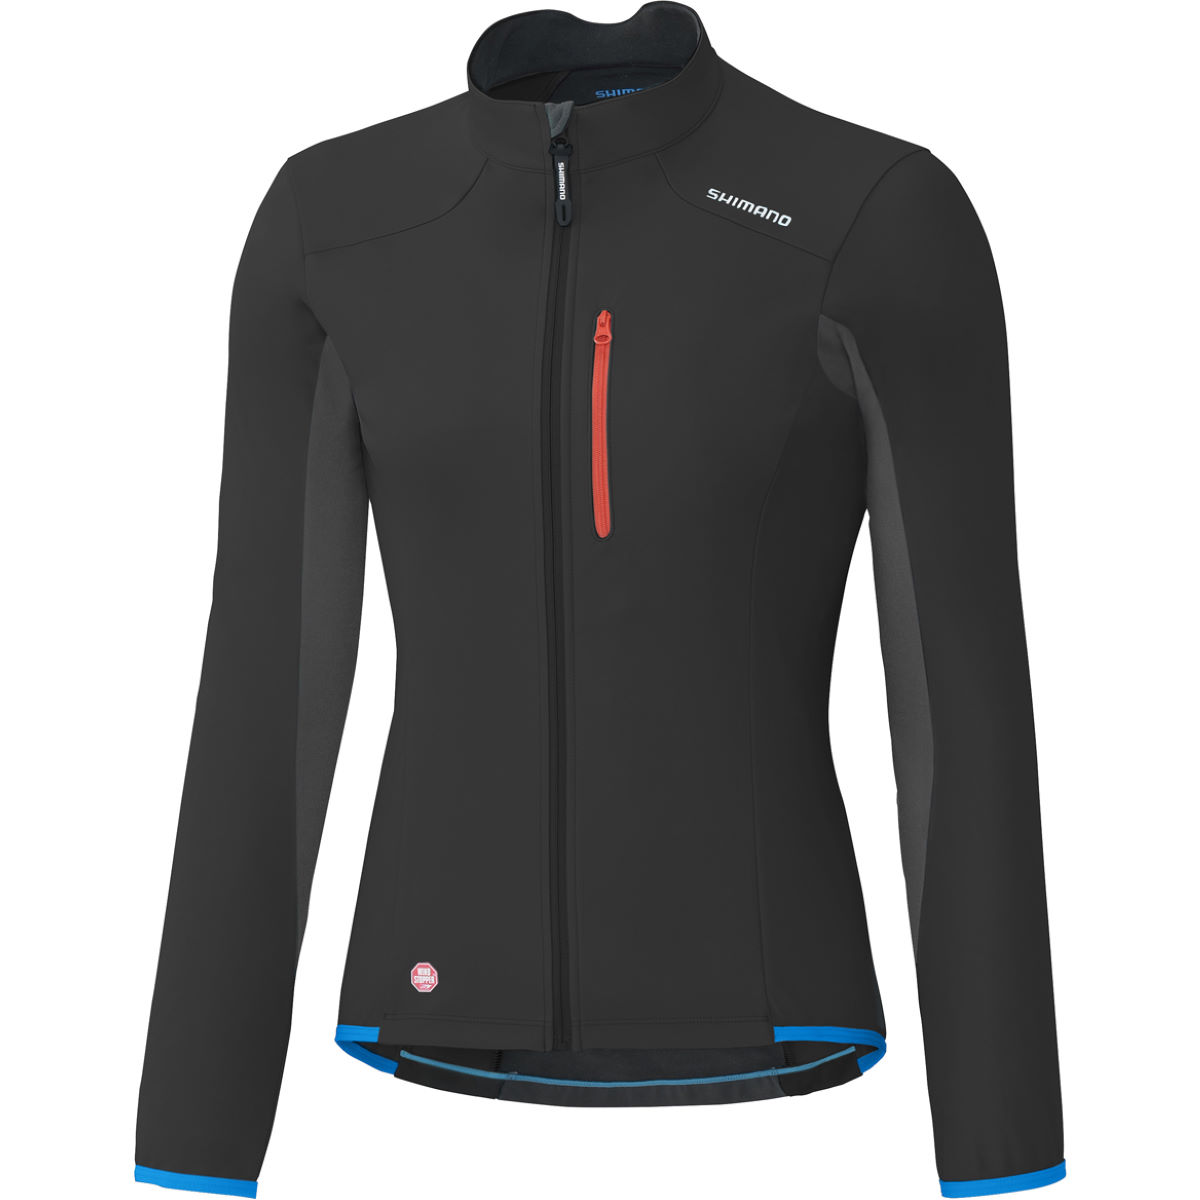 Veste Femme Shimano Windstopper - Medium Noir Coupe-vents vélo